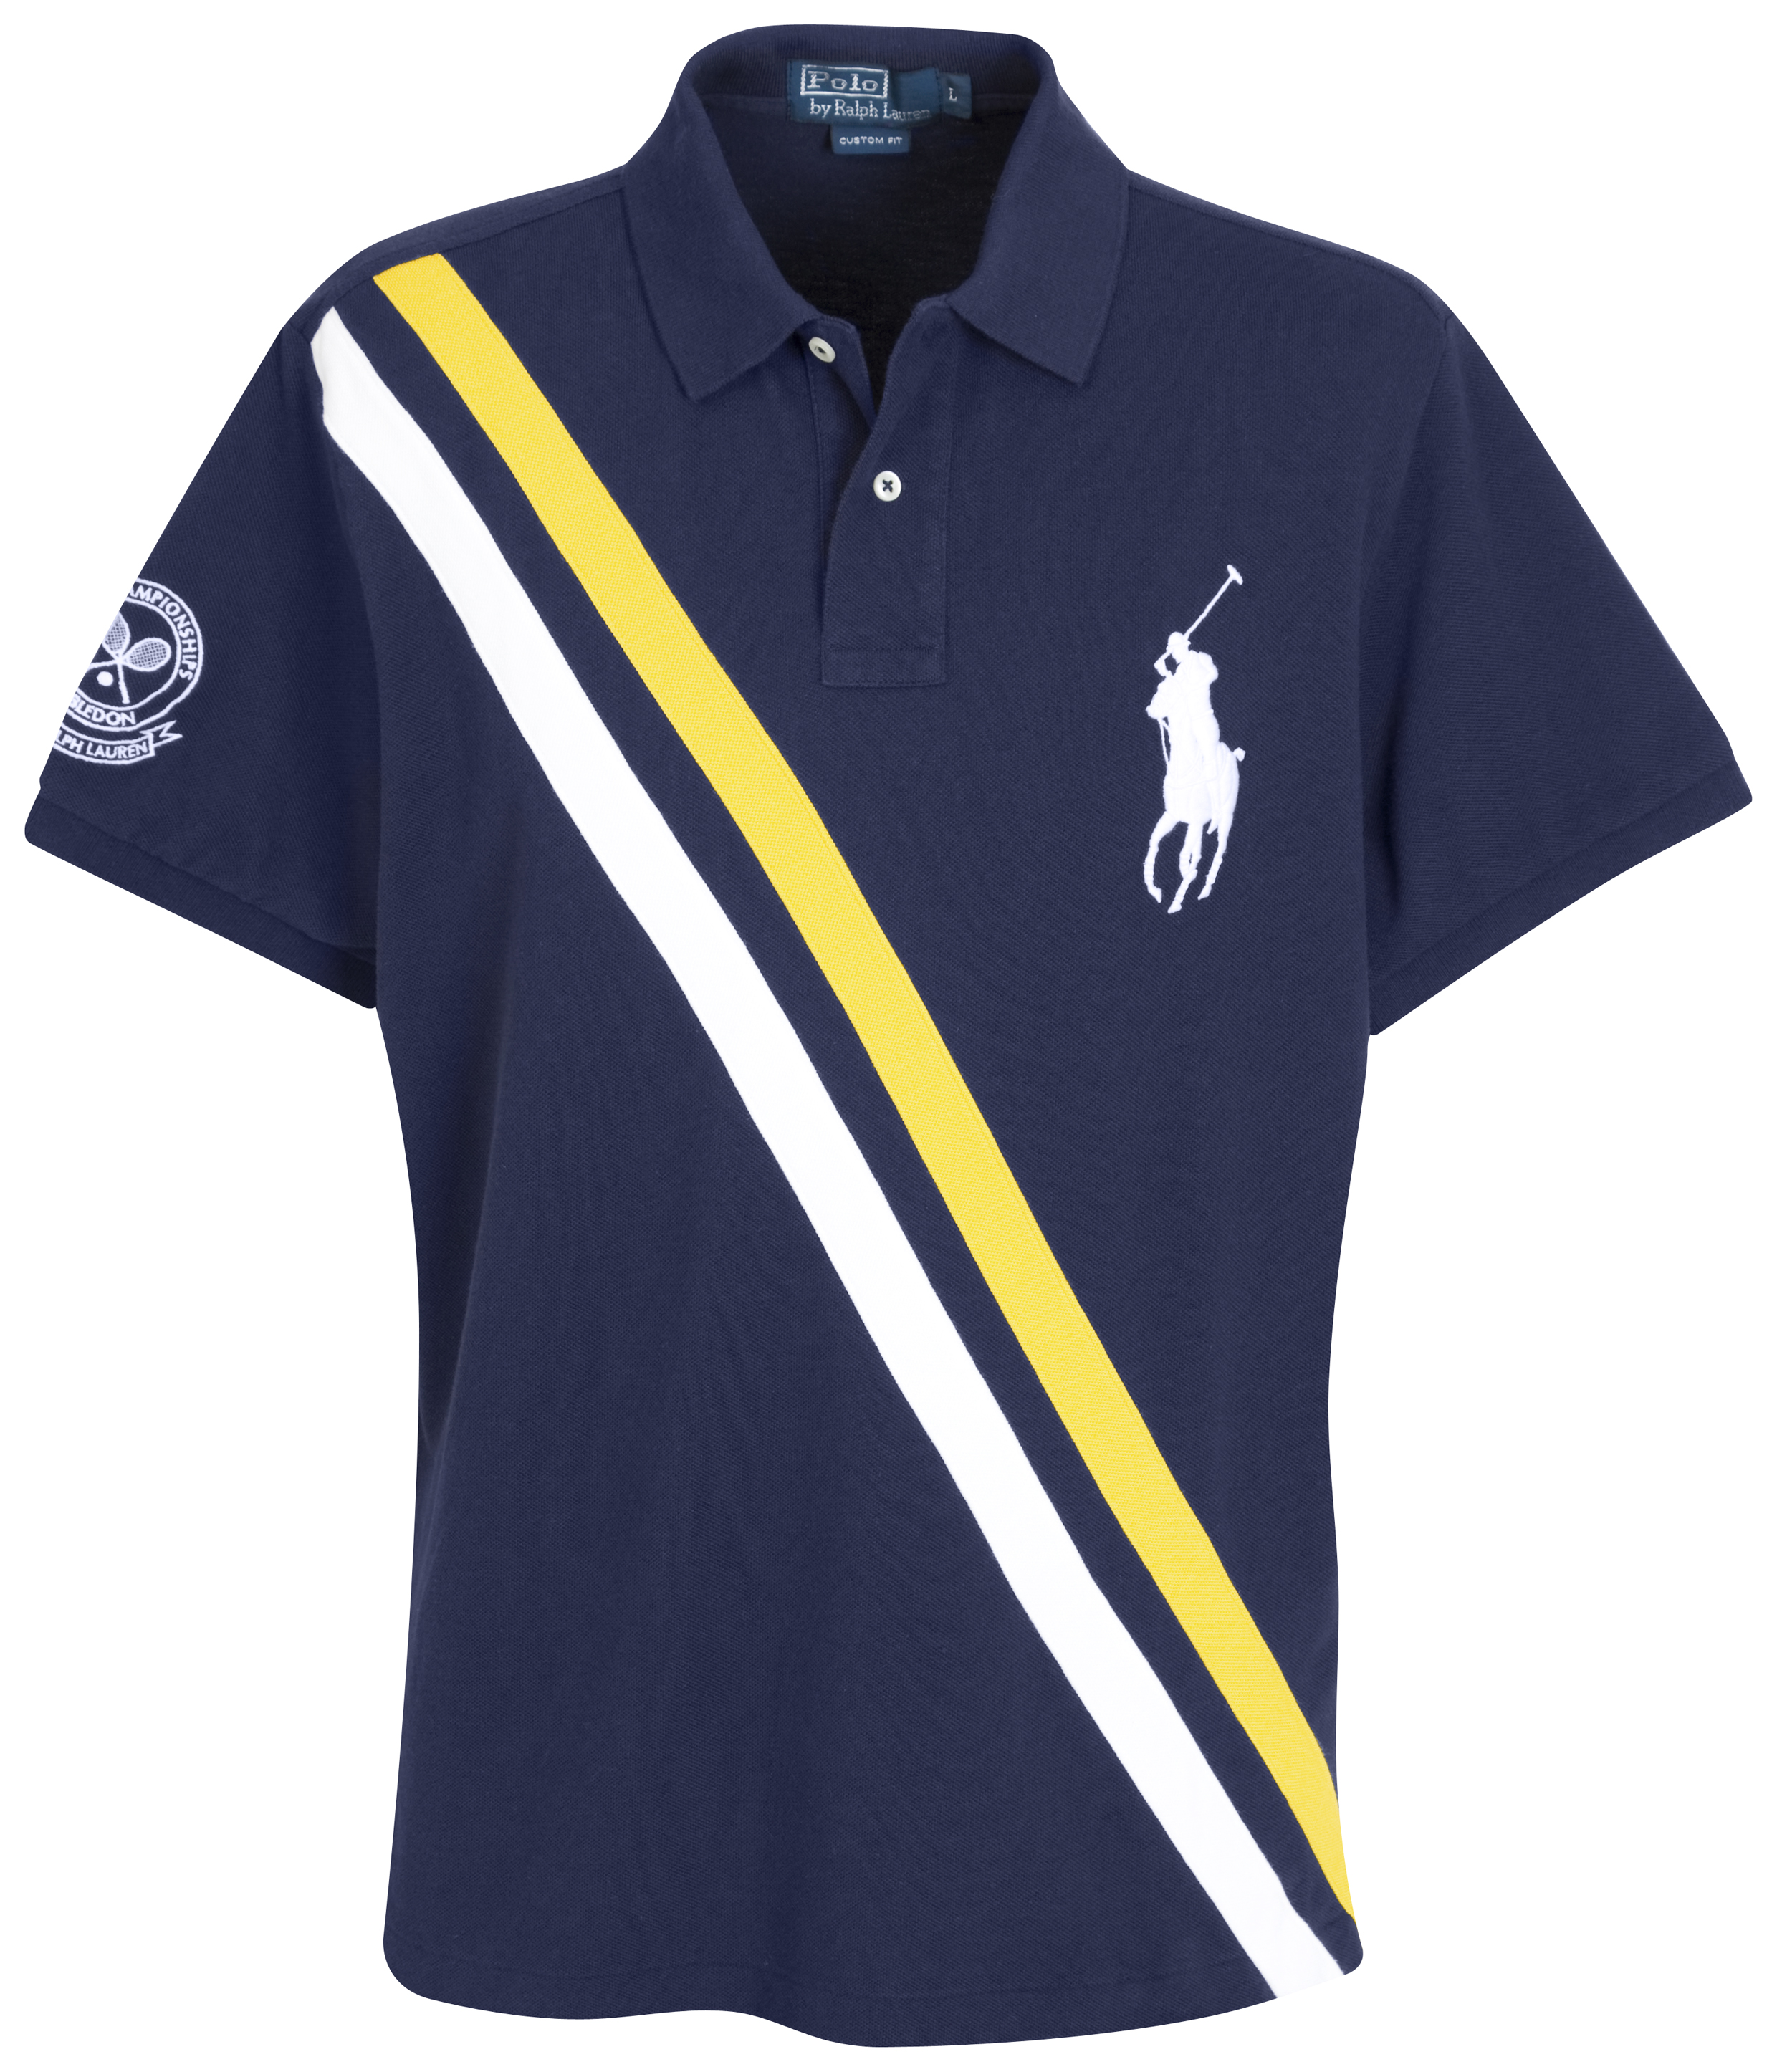 Polo Ralph Lauren Wimbledon Diagonal Stripe Polo - French Navy